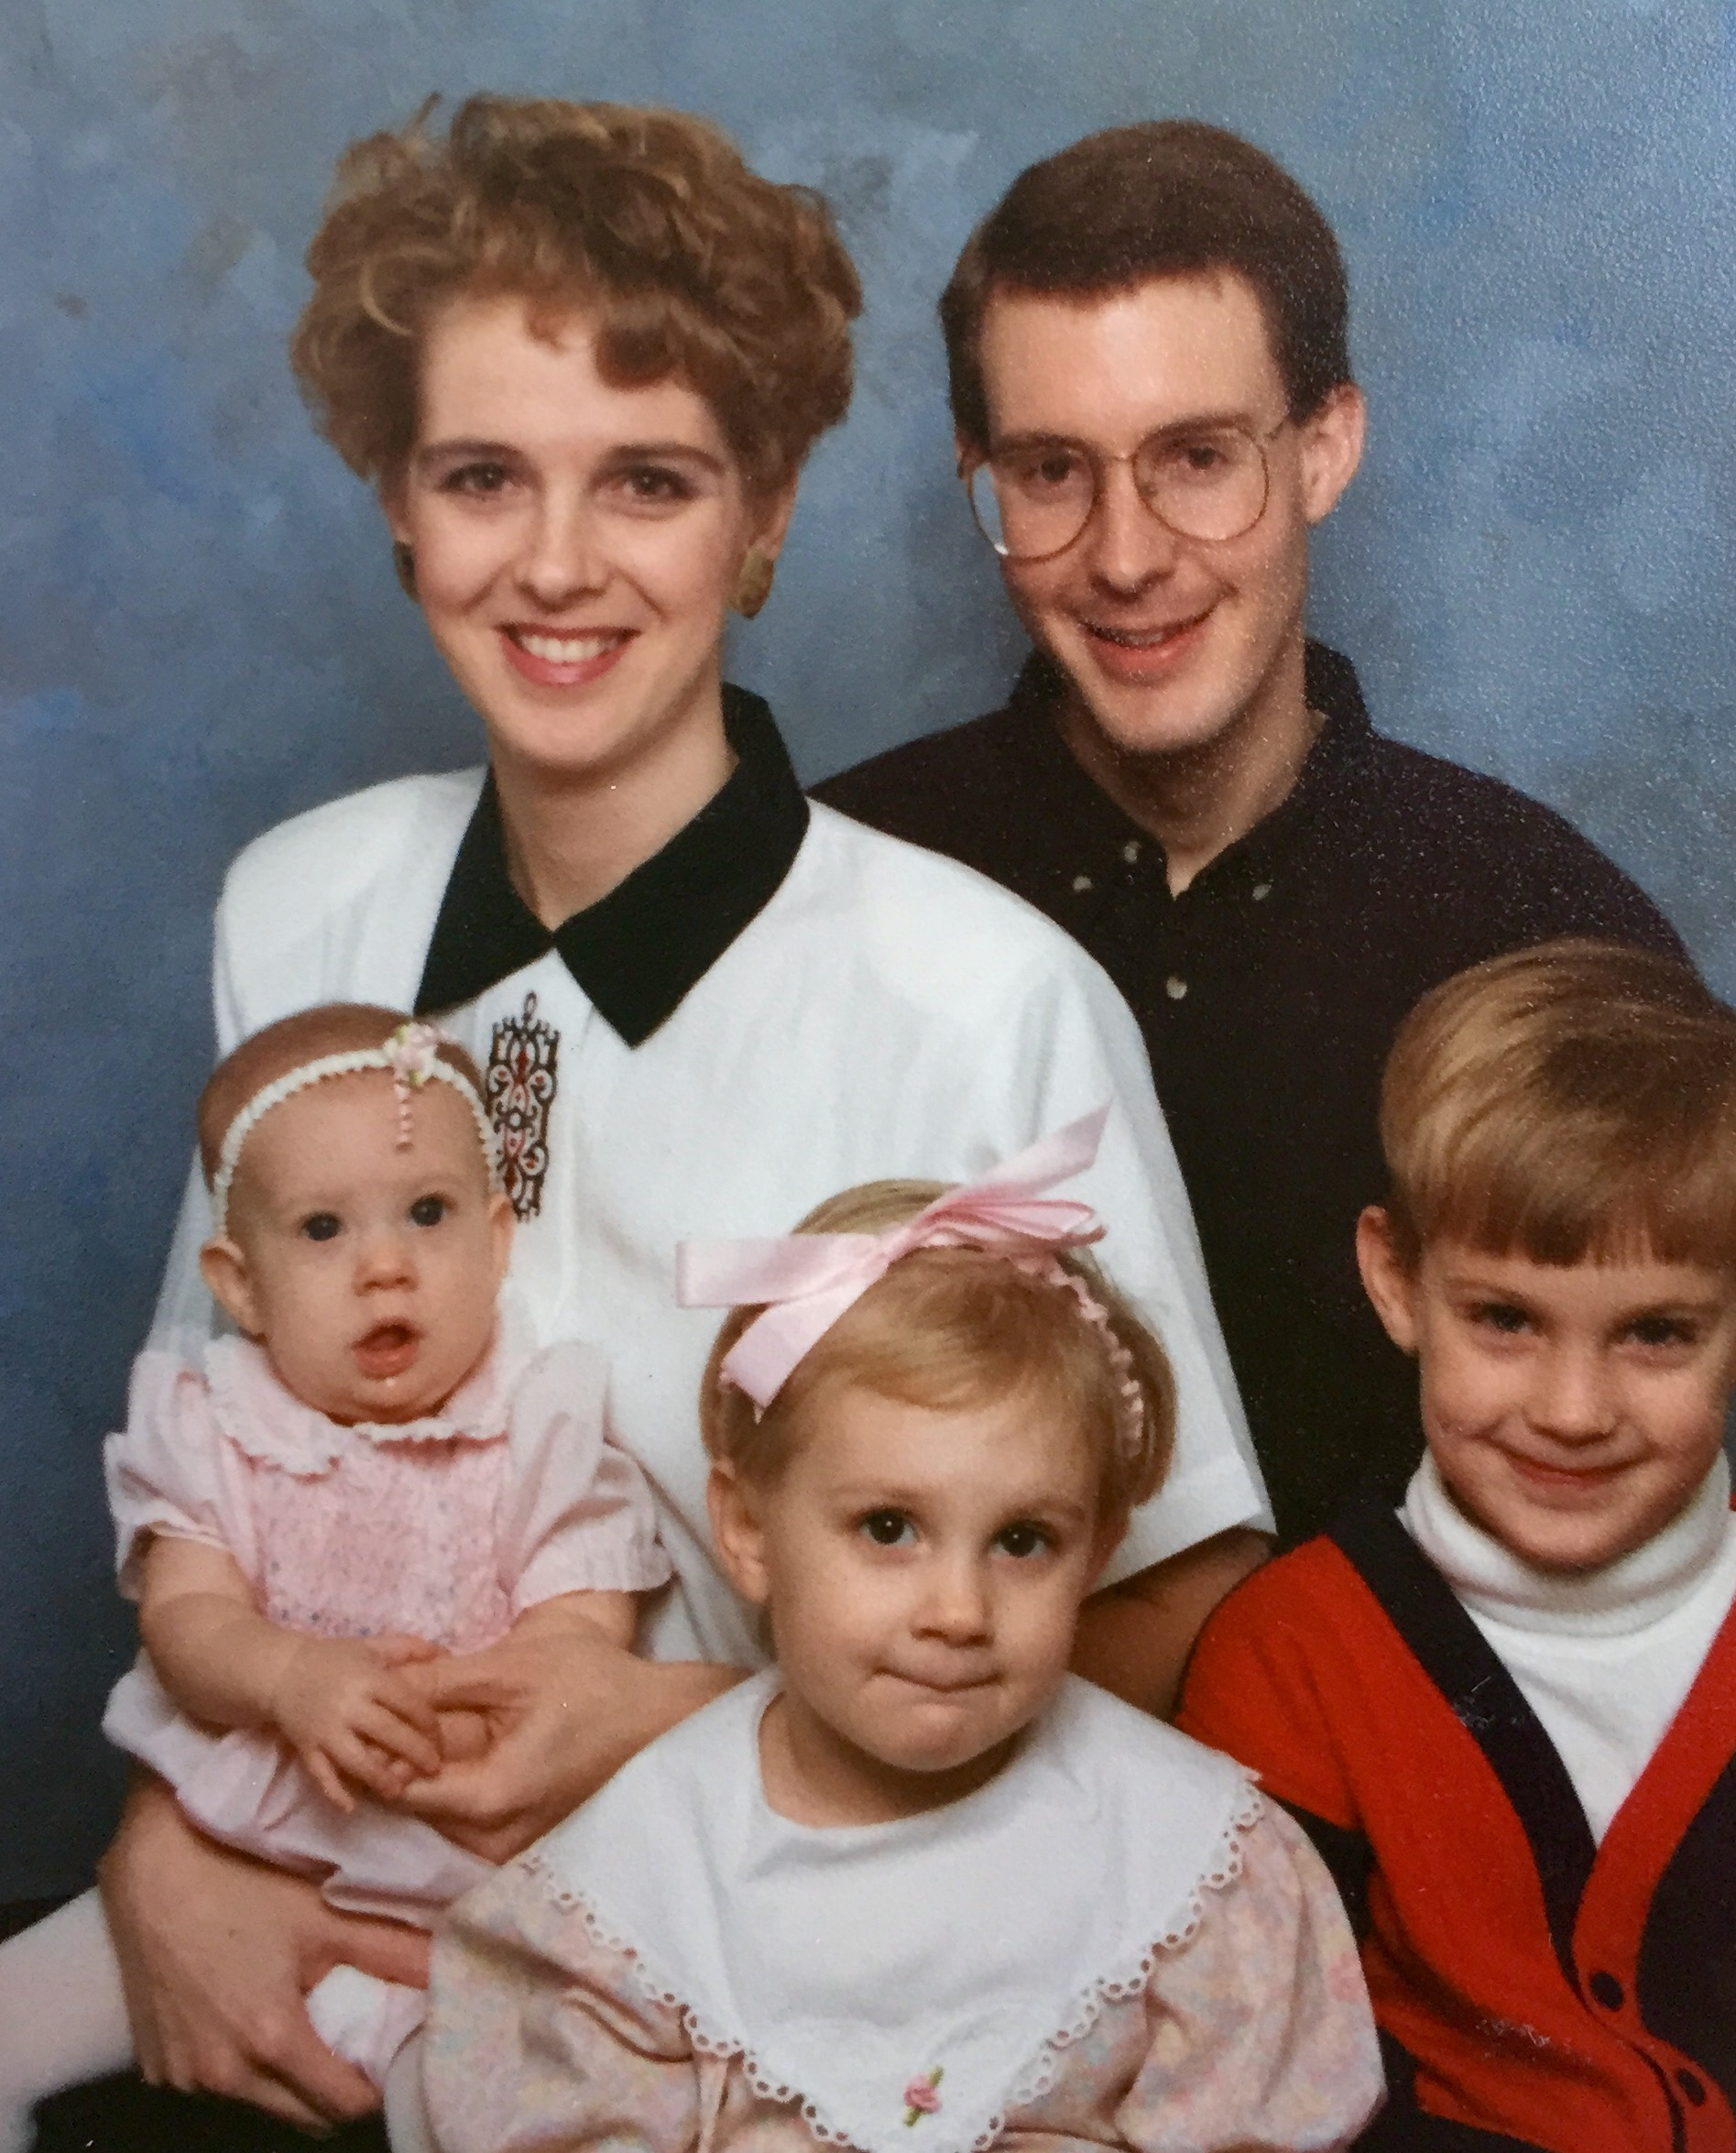 This is how I remember Julie's family in Chicago!